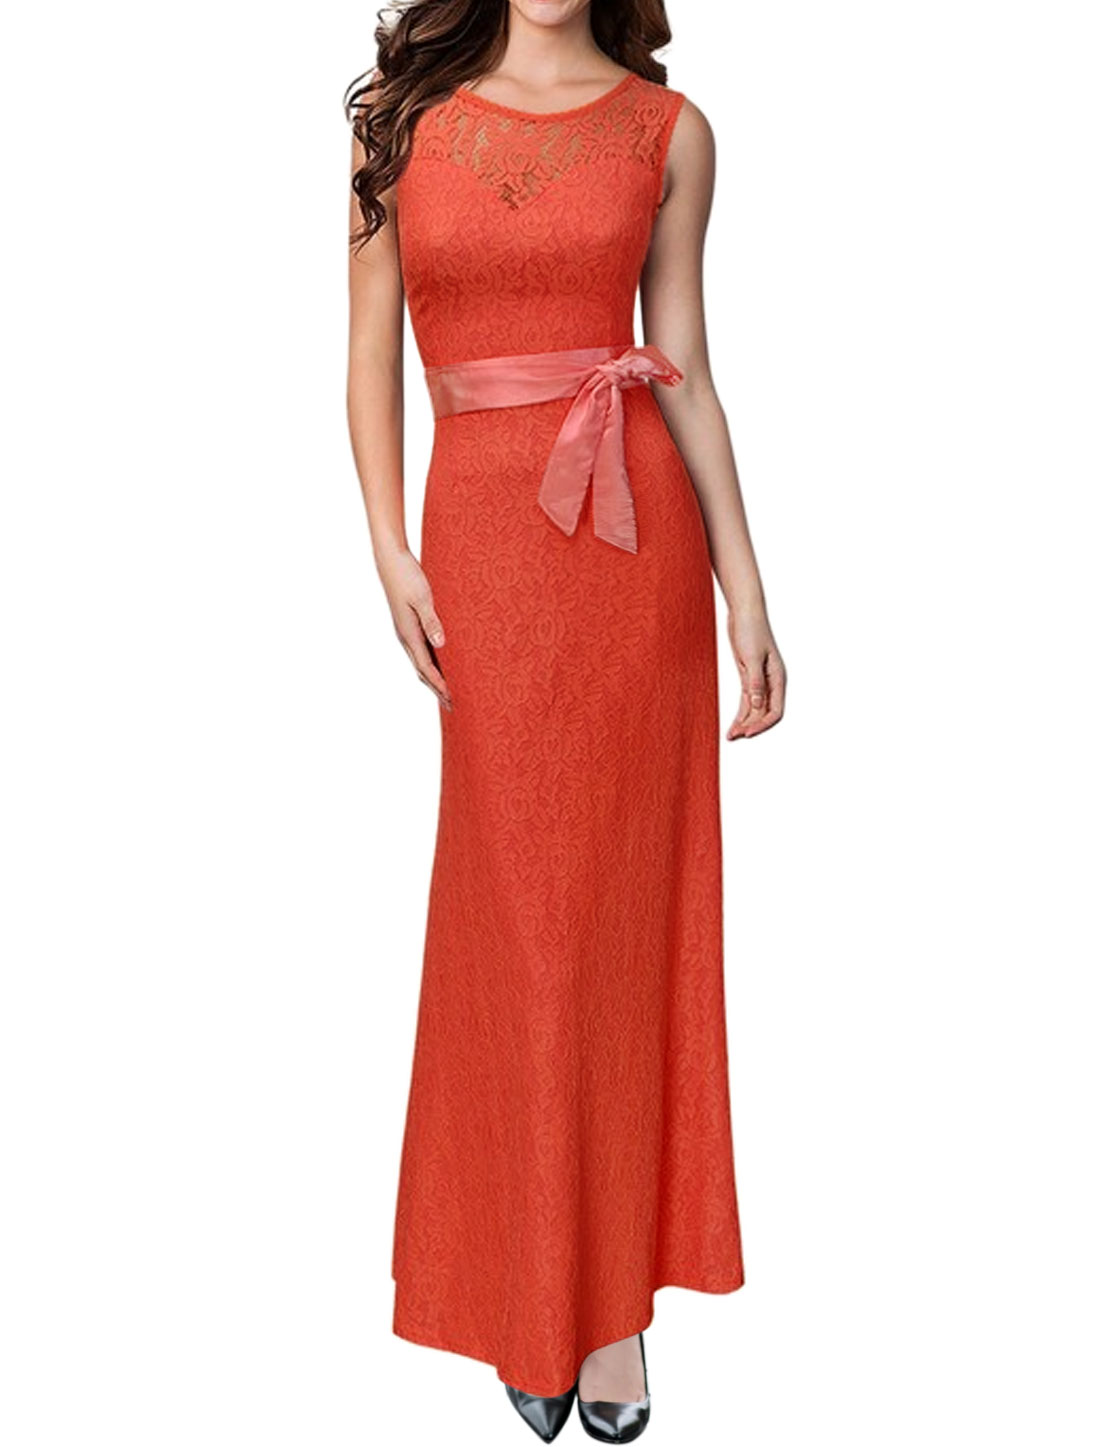 Women Sleeveless Open Back Maxi Lace Dress w Belt Orange XL